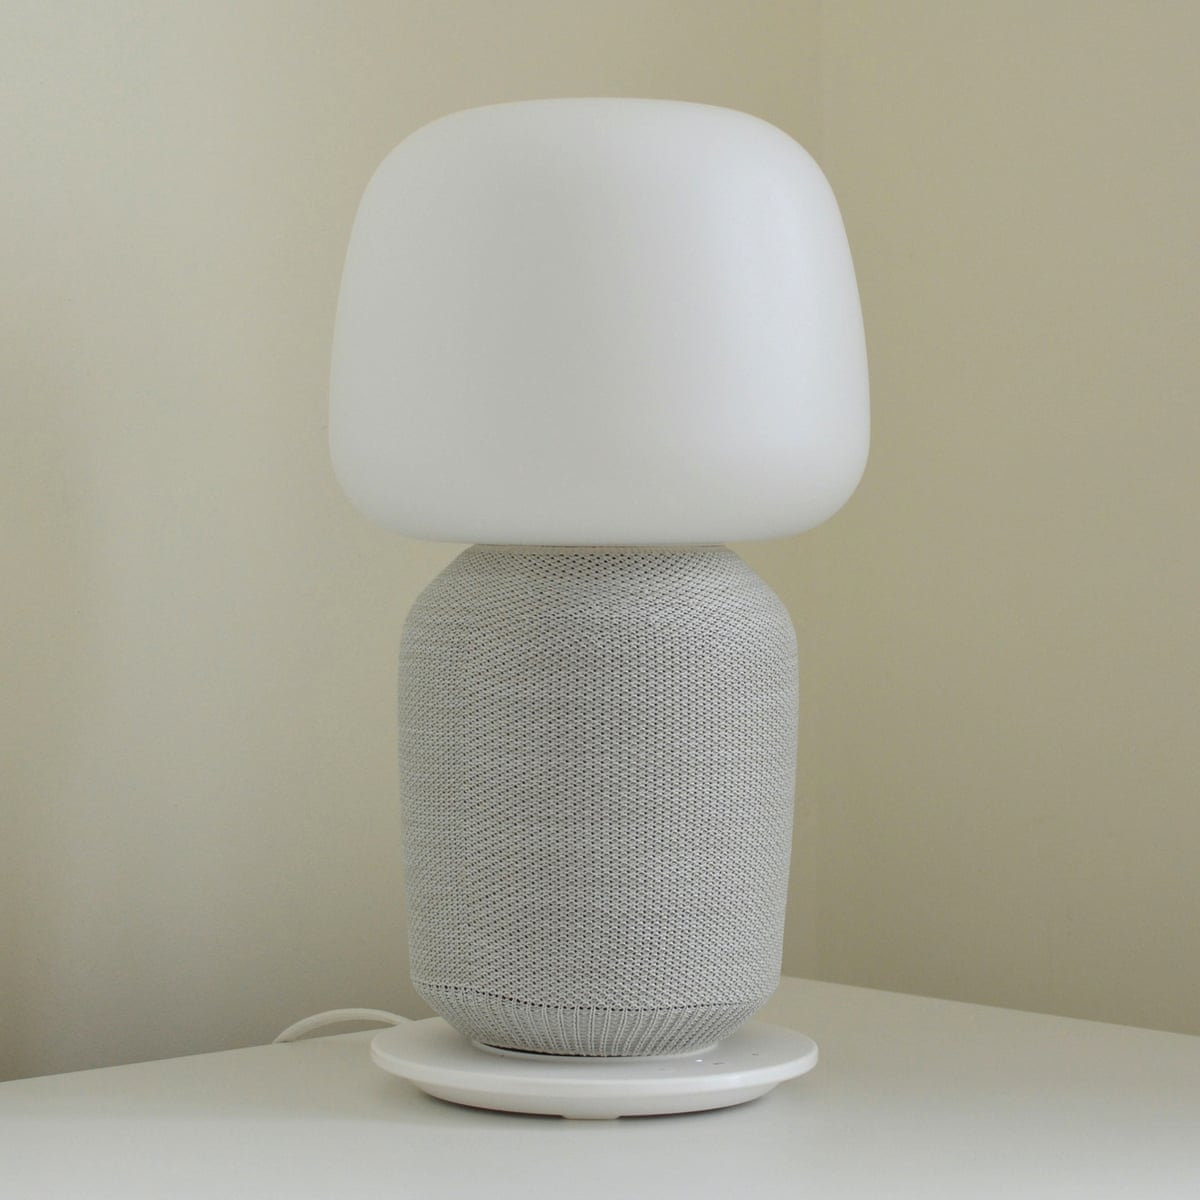 Ikea Symfonisk Review Table Lamp Is Also A Great Sounding Sonos Wifi Speaker Gadgets The Guardian